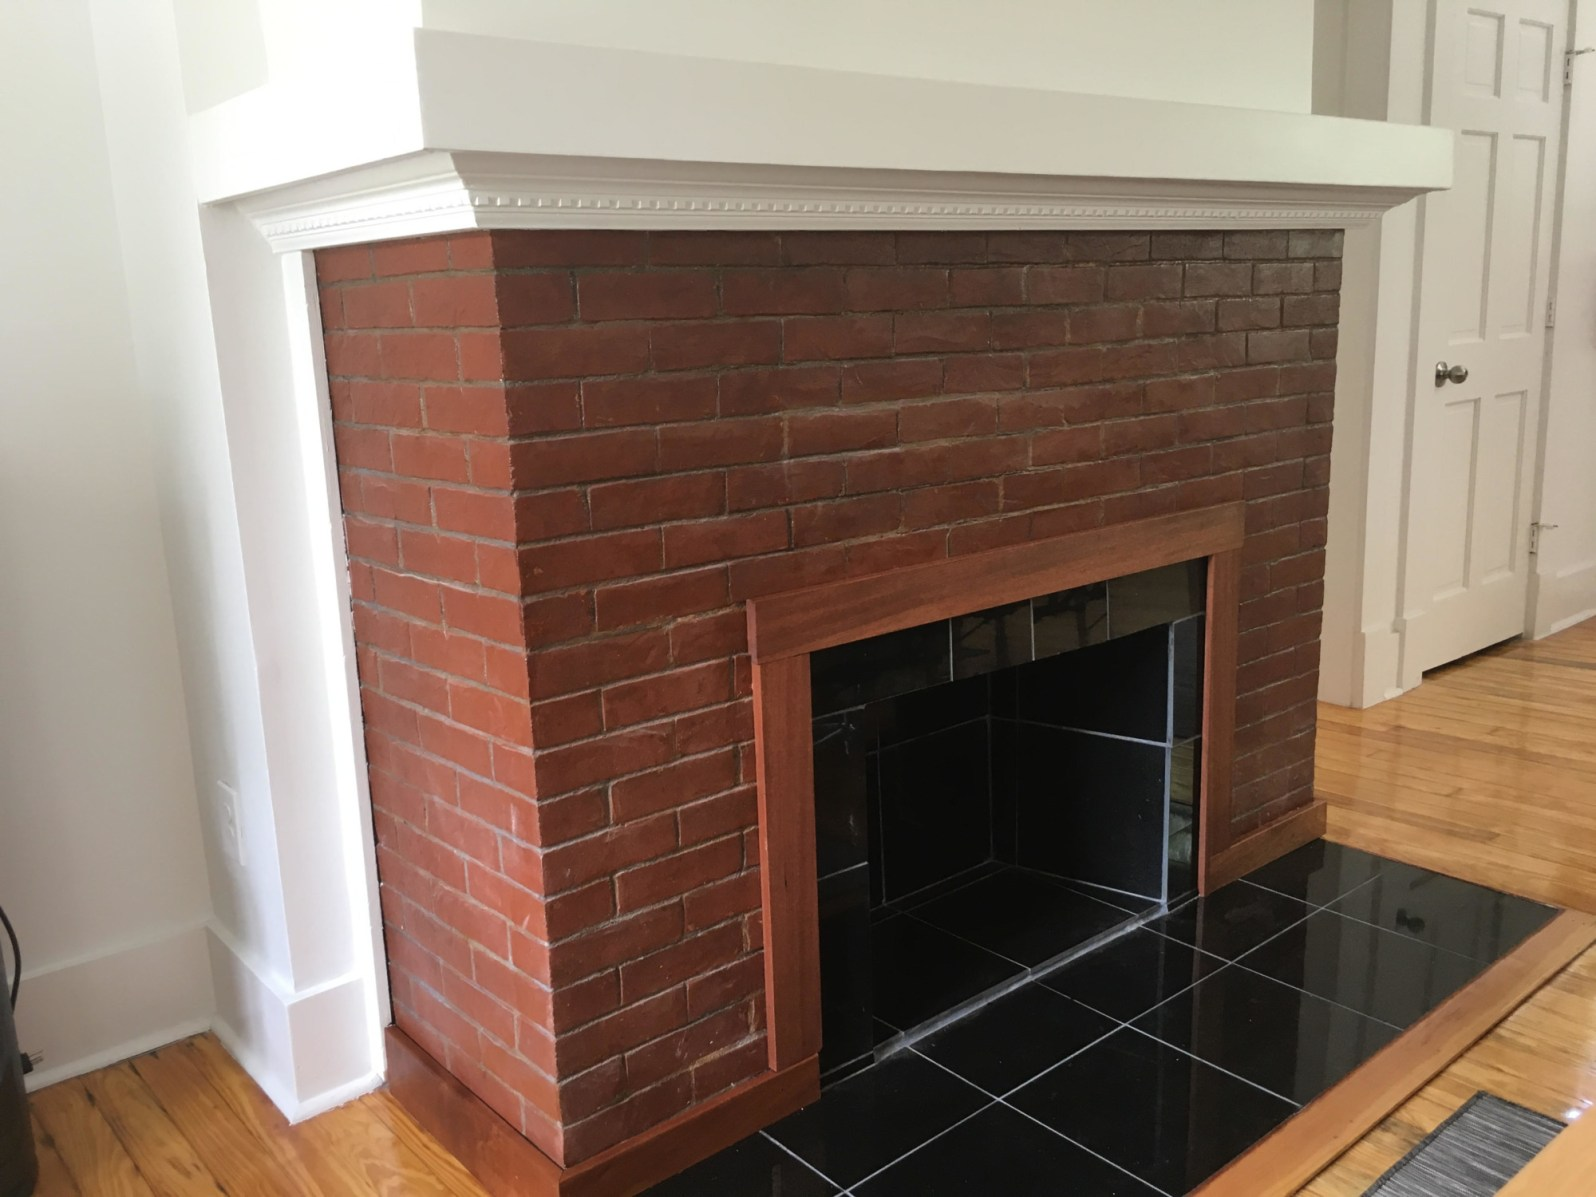 The red brick fireplace discovered by construction workers (Courtesy of River Inn Miami)